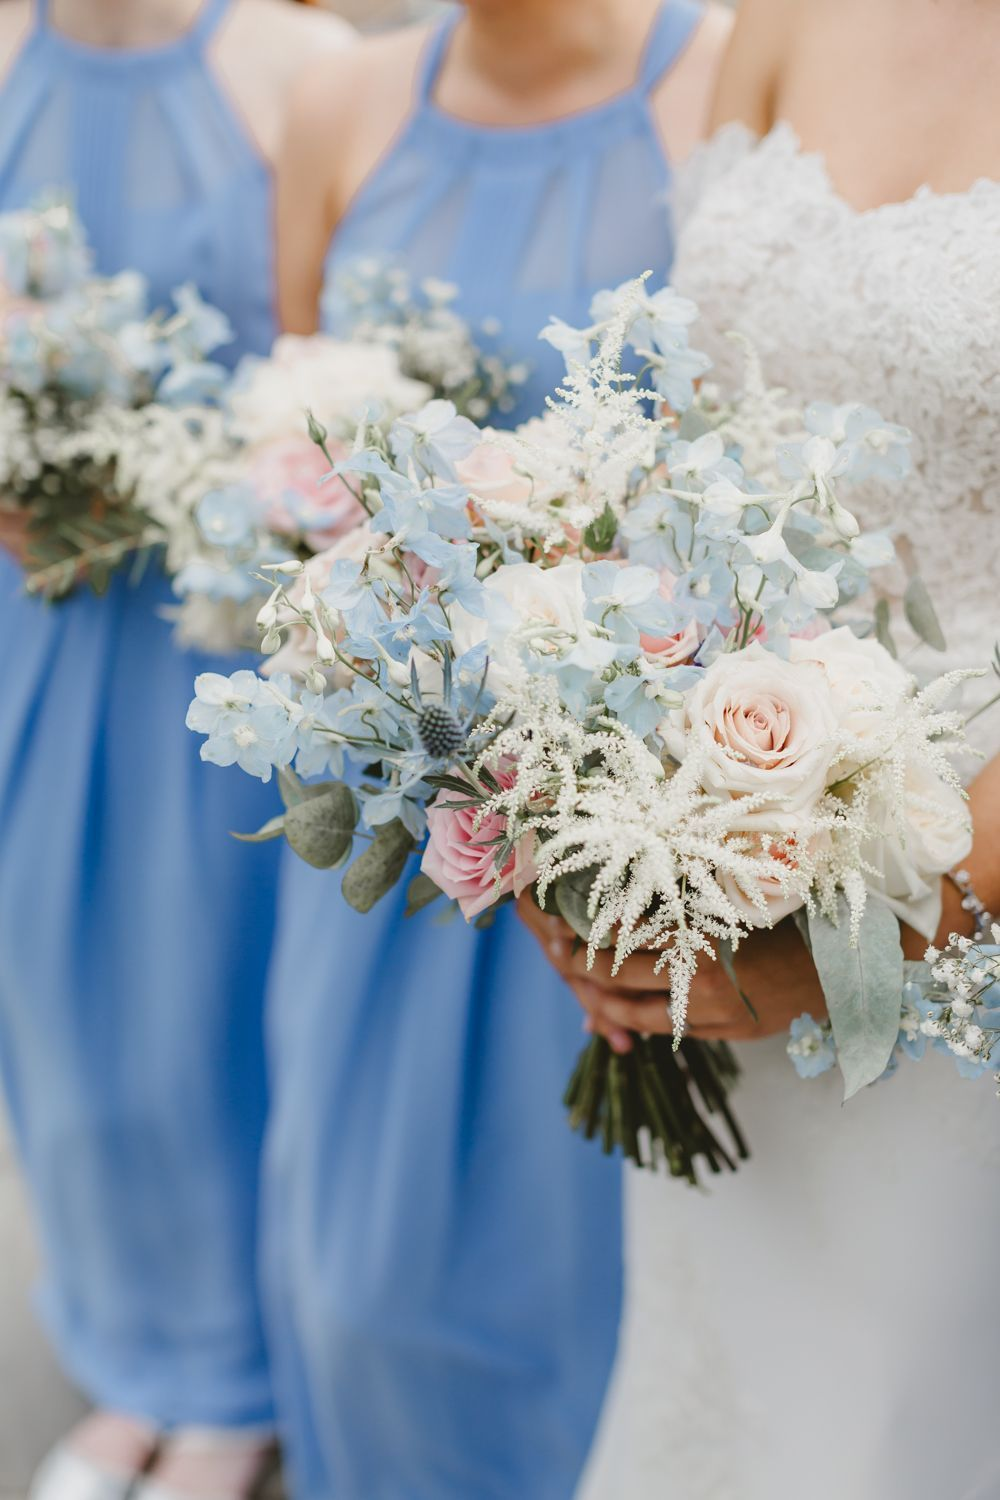 GG's Yard Wedding Fun & Rustic Coastal Chic Weekender Barn in Powder Blue Hues #astilbebouquet Bouquet Flowers Bride Bridal Pink Blue Rose Astilbe GG's Yard Wedding Amy Lou Photography #WeddingBouquet #WeddingFlowers #BrideBouquet  #BridalBouquet   #PinkBouquet  #BlueBouquet  #RoseBouquet  #AstilbeBouquet  #Wedding #astilbebouquet GG's Yard Wedding Fun & Rustic Coastal Chic Weekender Barn in Powder Blue Hues #astilbebouquet Bouquet Flowers Bride Bridal Pink Blue Rose Astilbe GG's Yard Weddin #astilbebouquet